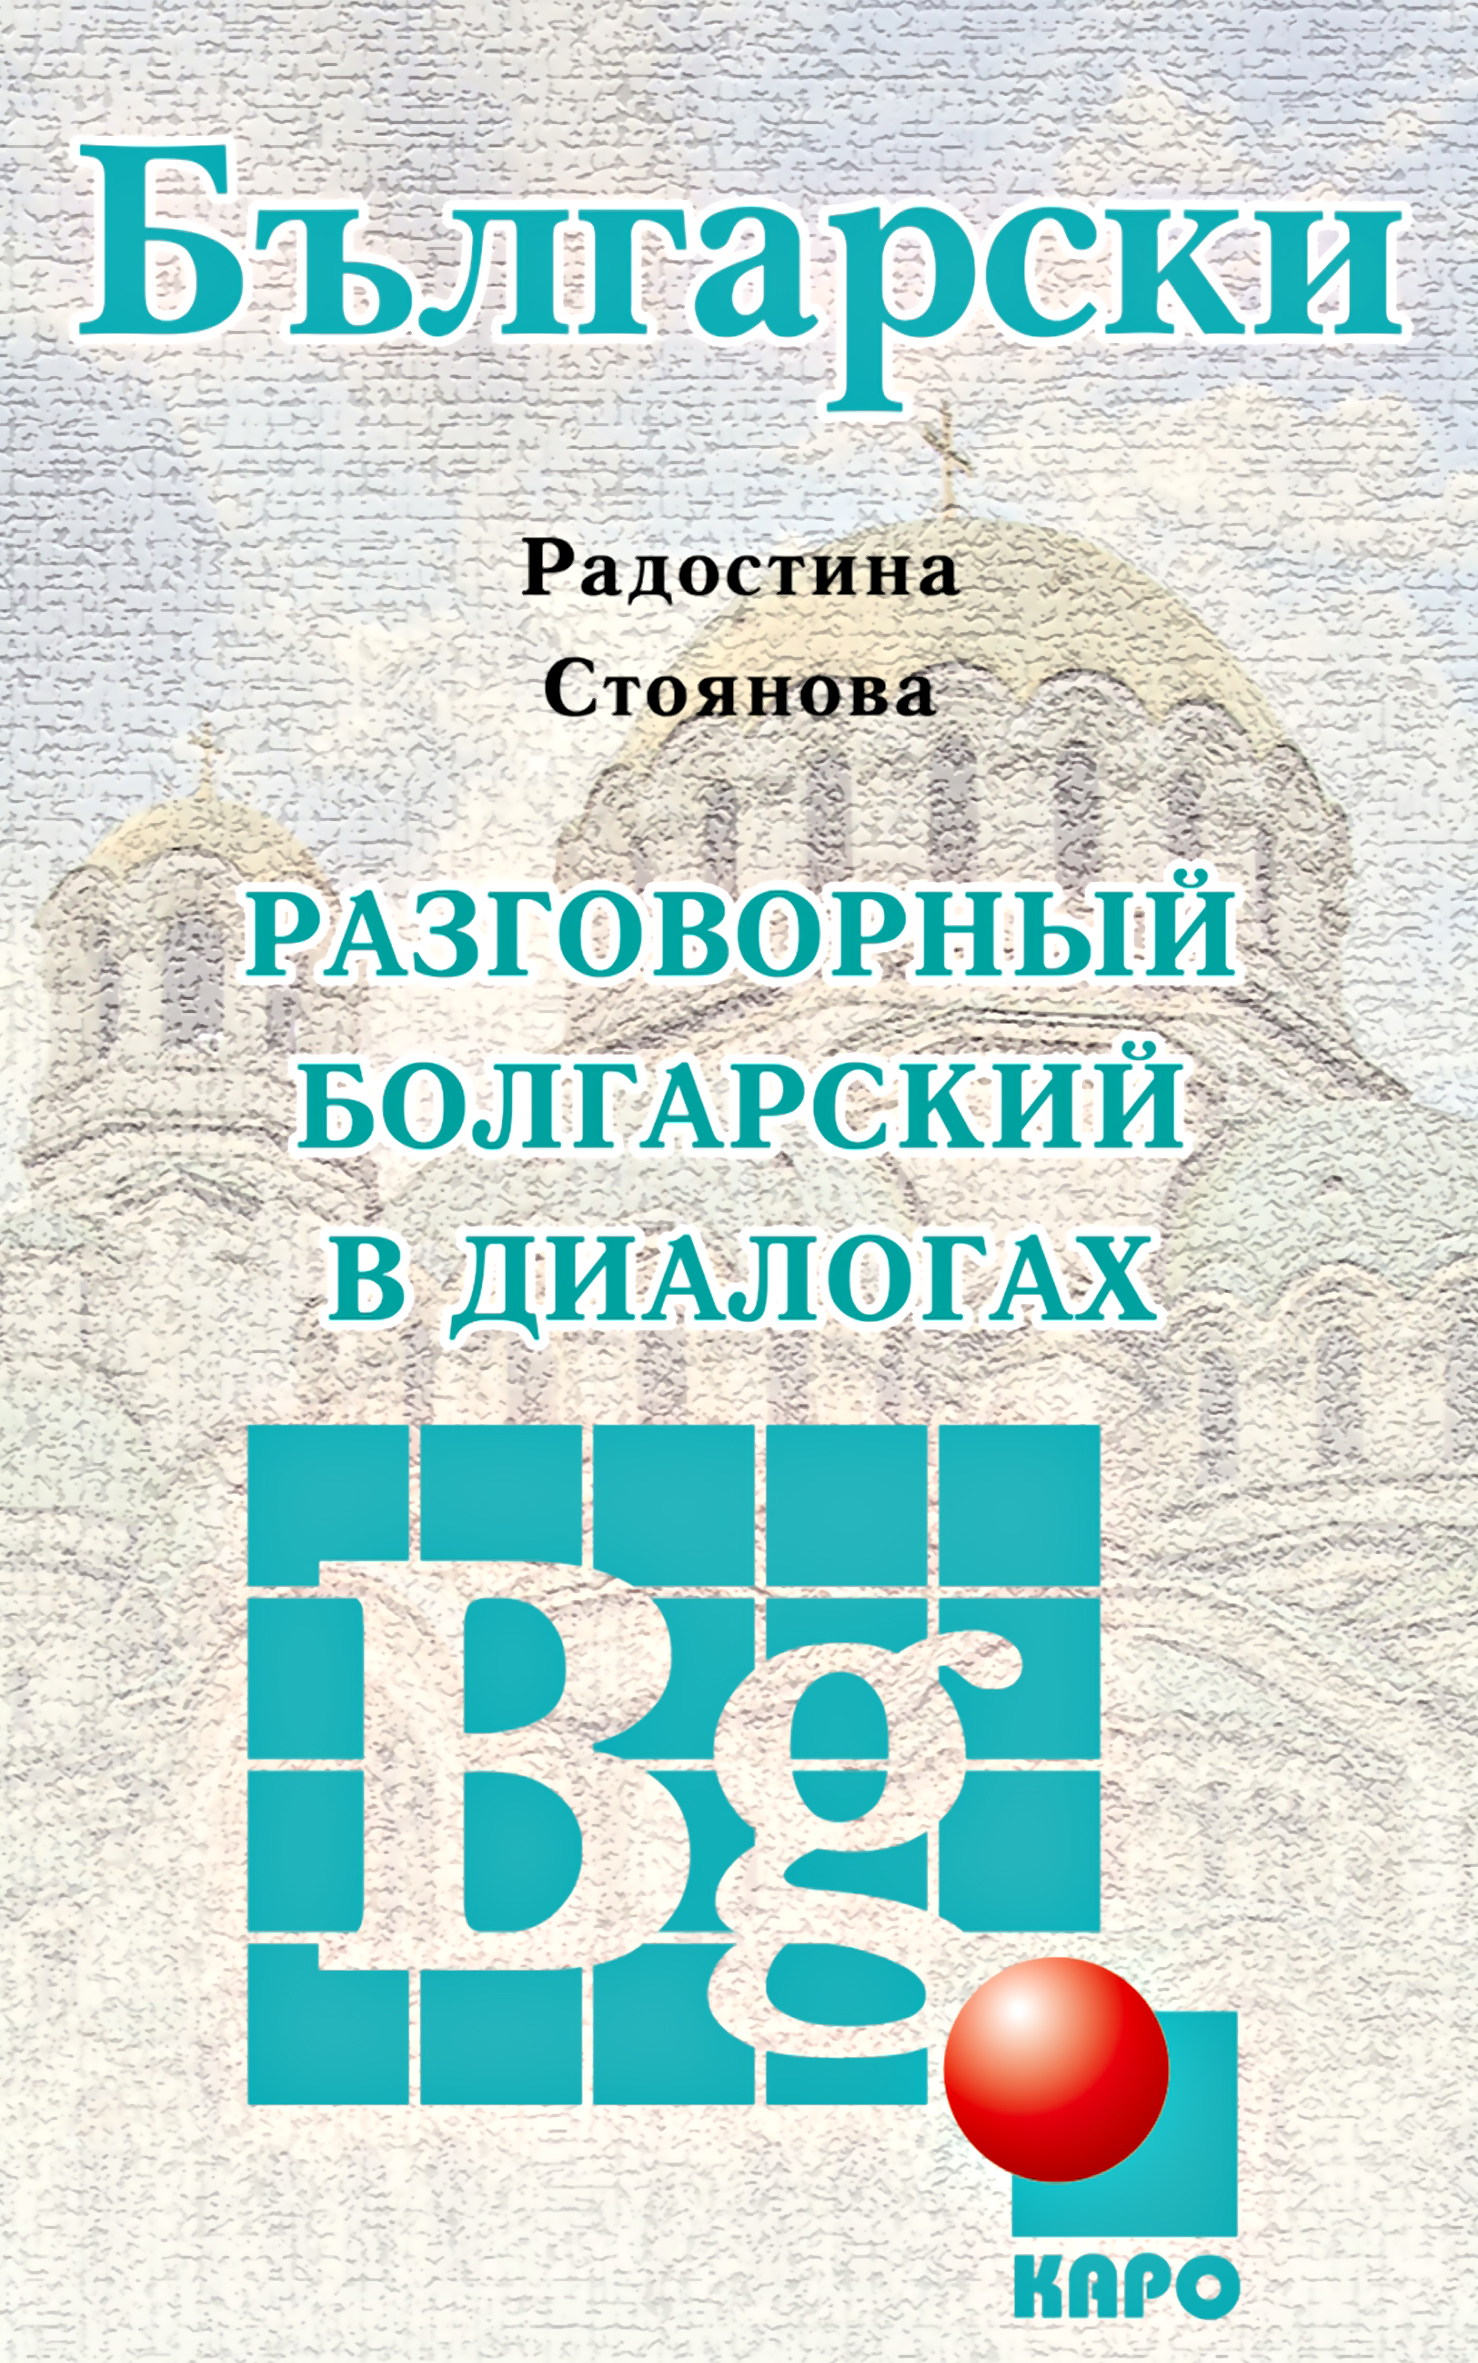 Радостина Стоянова Разговорный болгарский в диалогах steve dawson internal control anti fraud program design for the small business a guide for companies not subject to the sarbanes oxley act